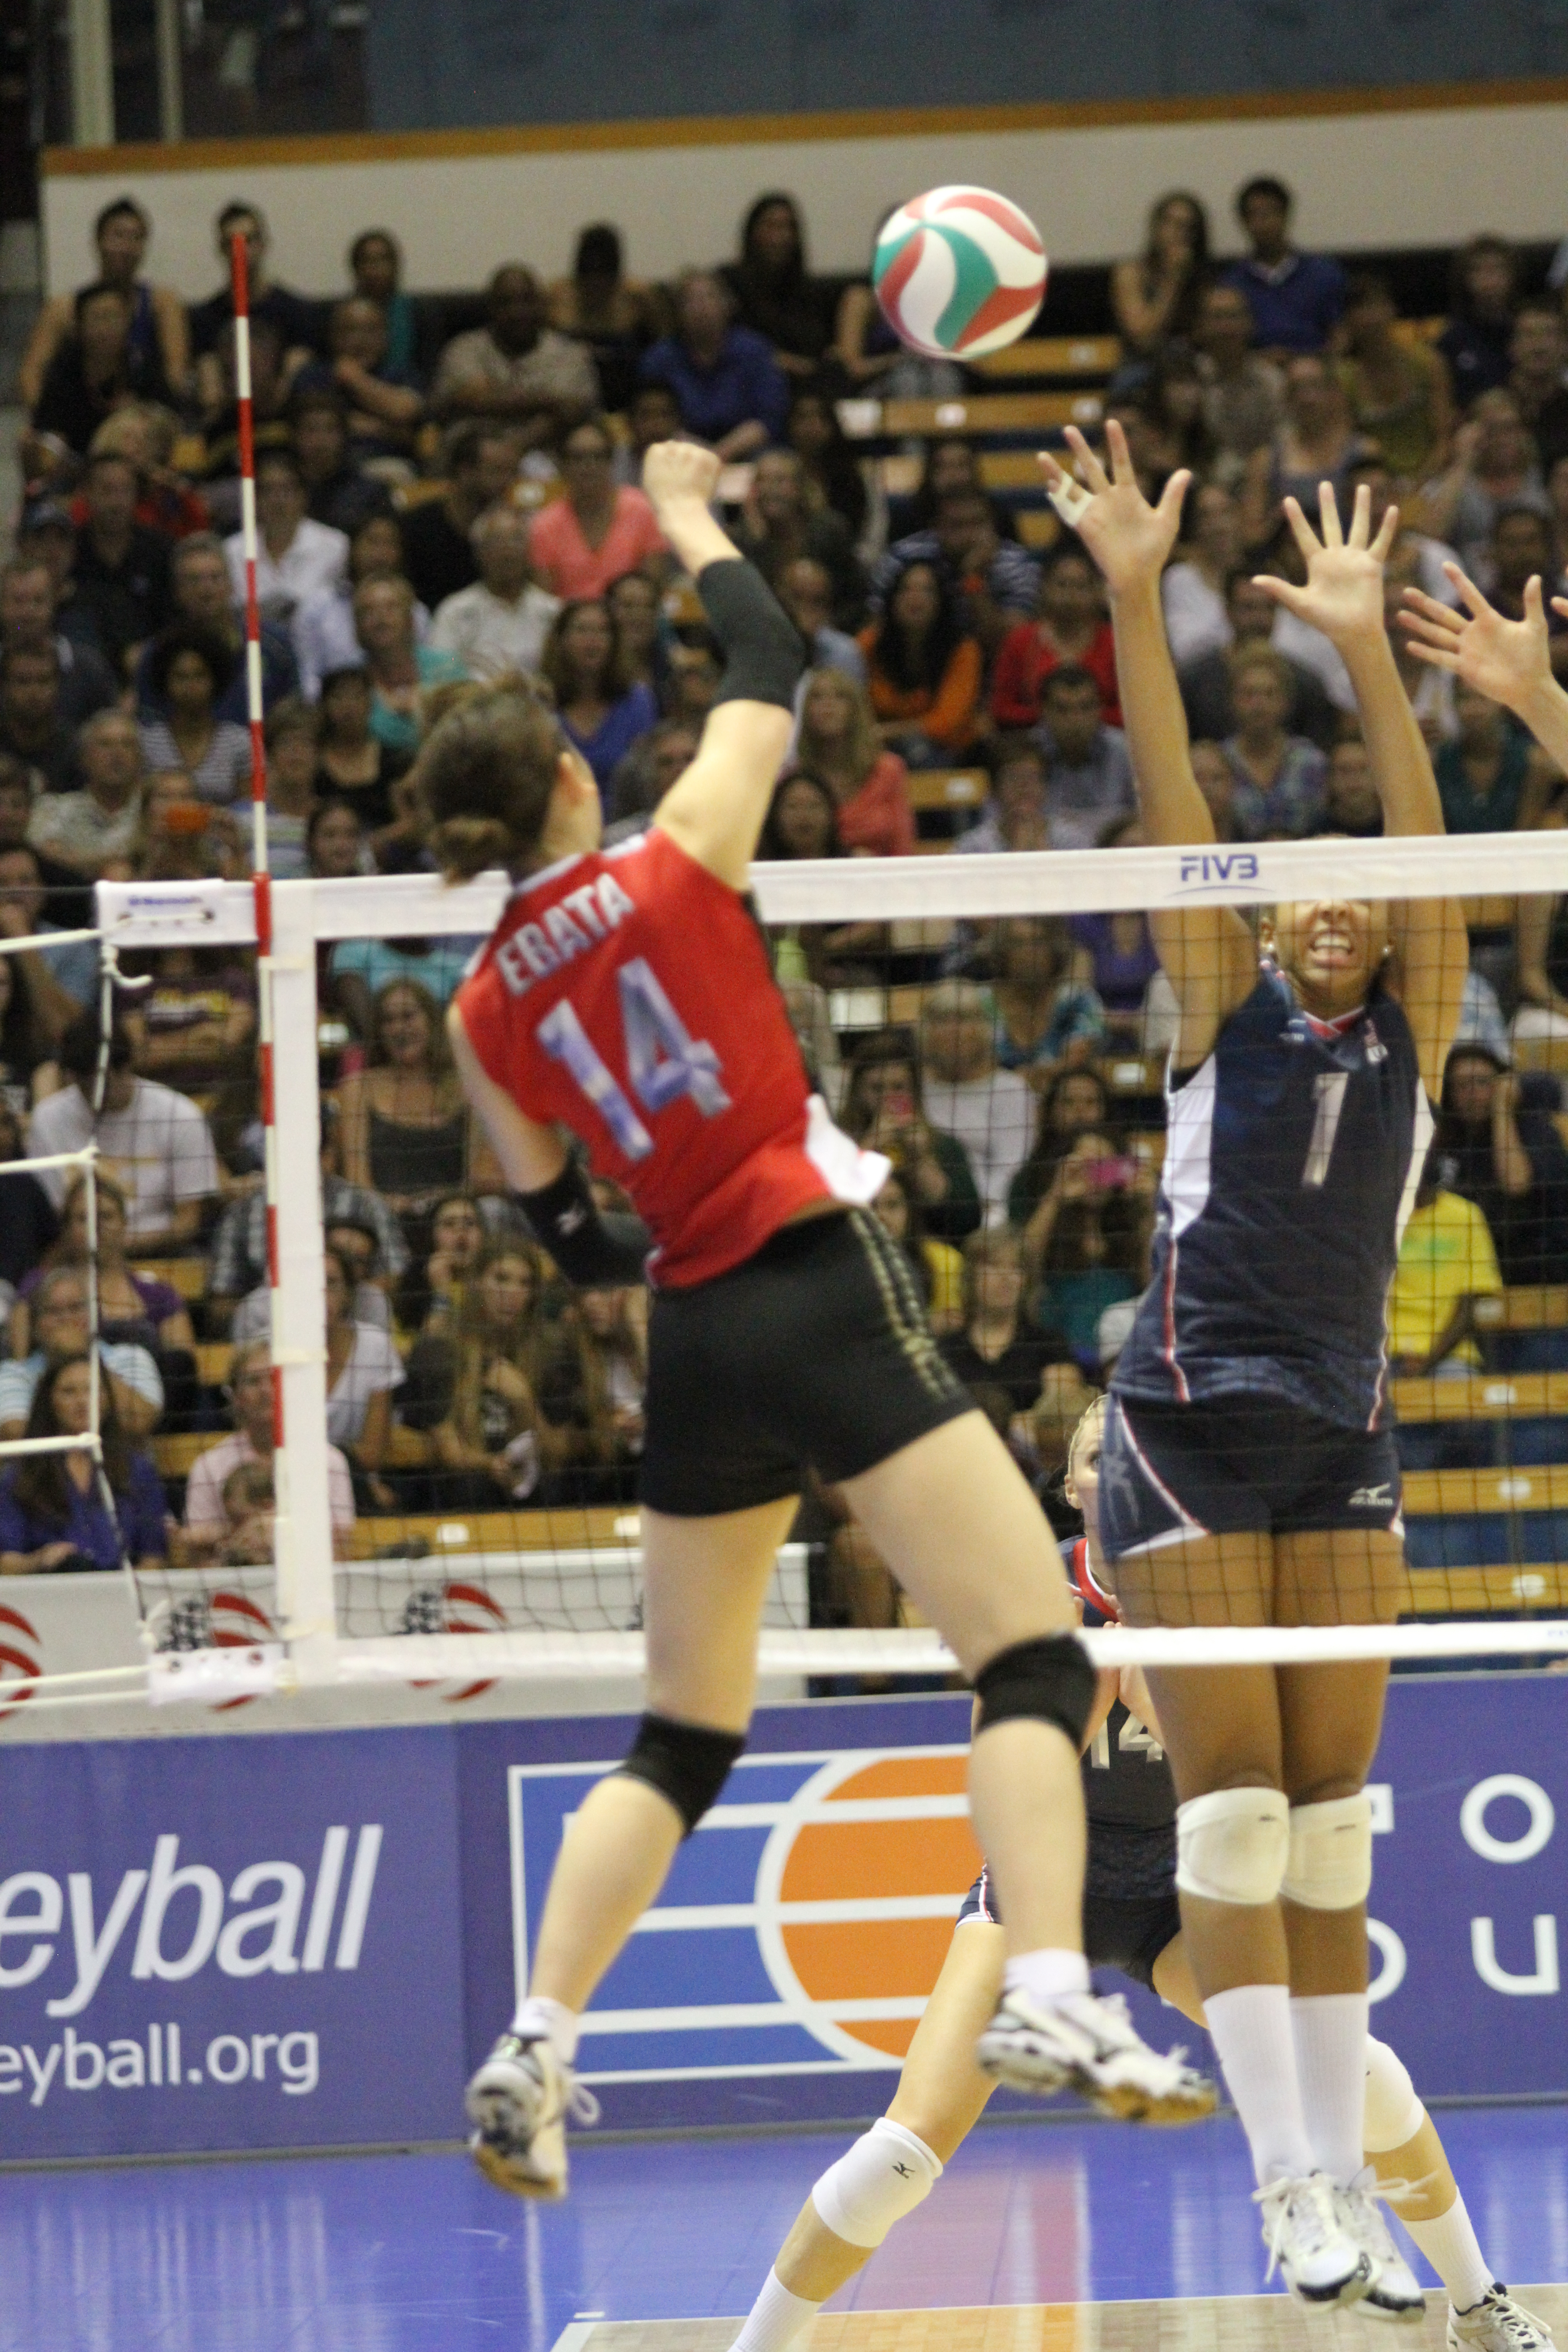 USA Volleyball Player